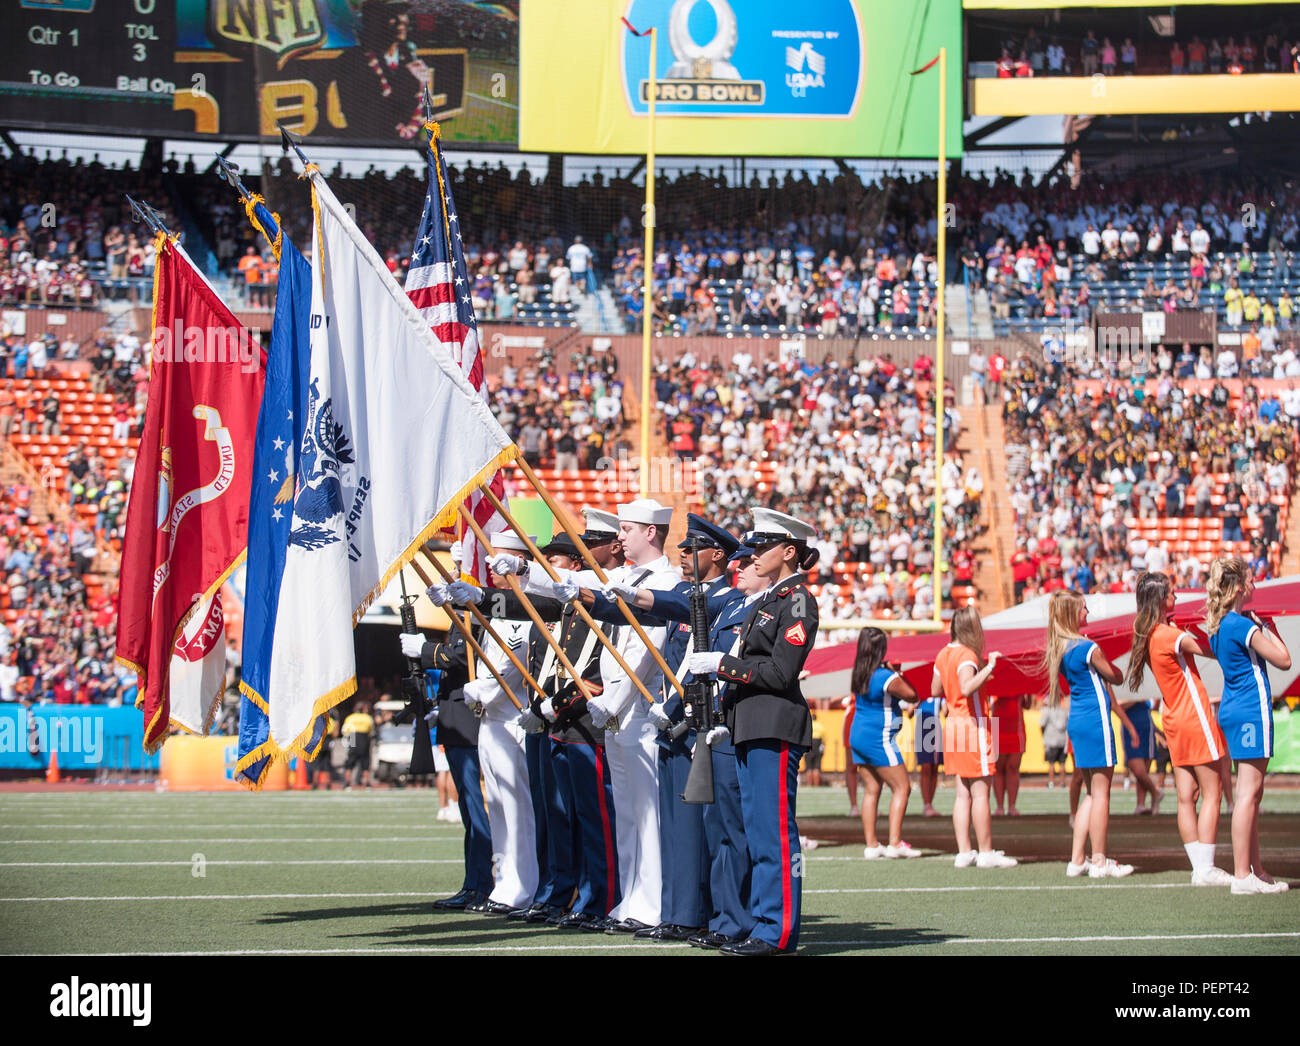 Nfl Events Stock Photos & Nfl Events Stock Images - Alamy